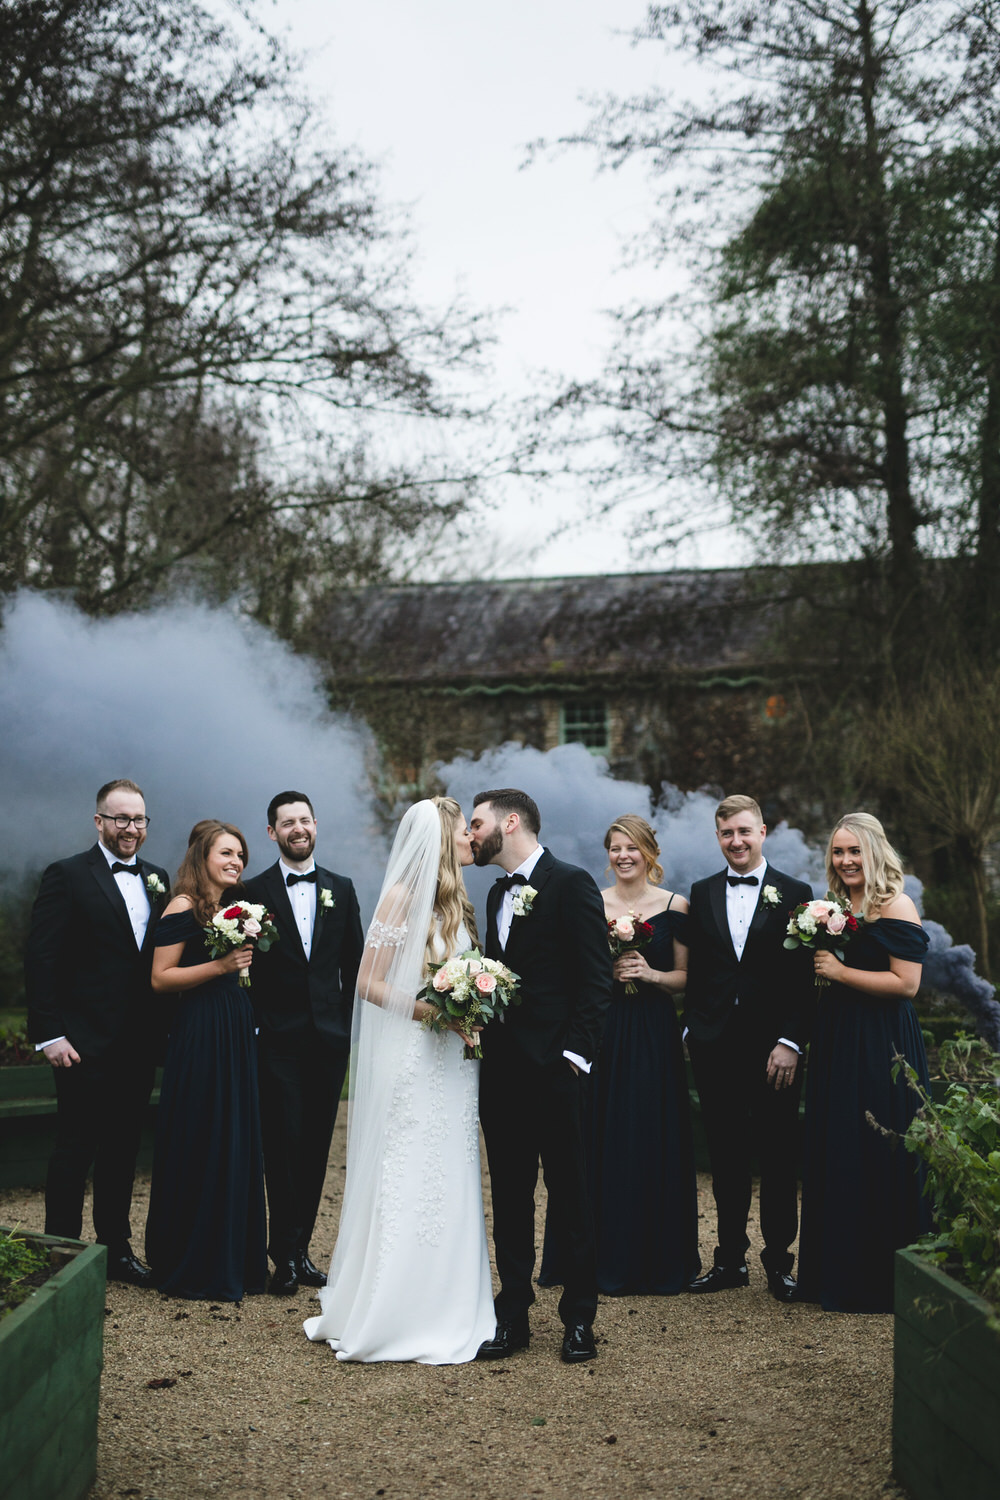 Smoke bomb wedding portrait in The village at lyons